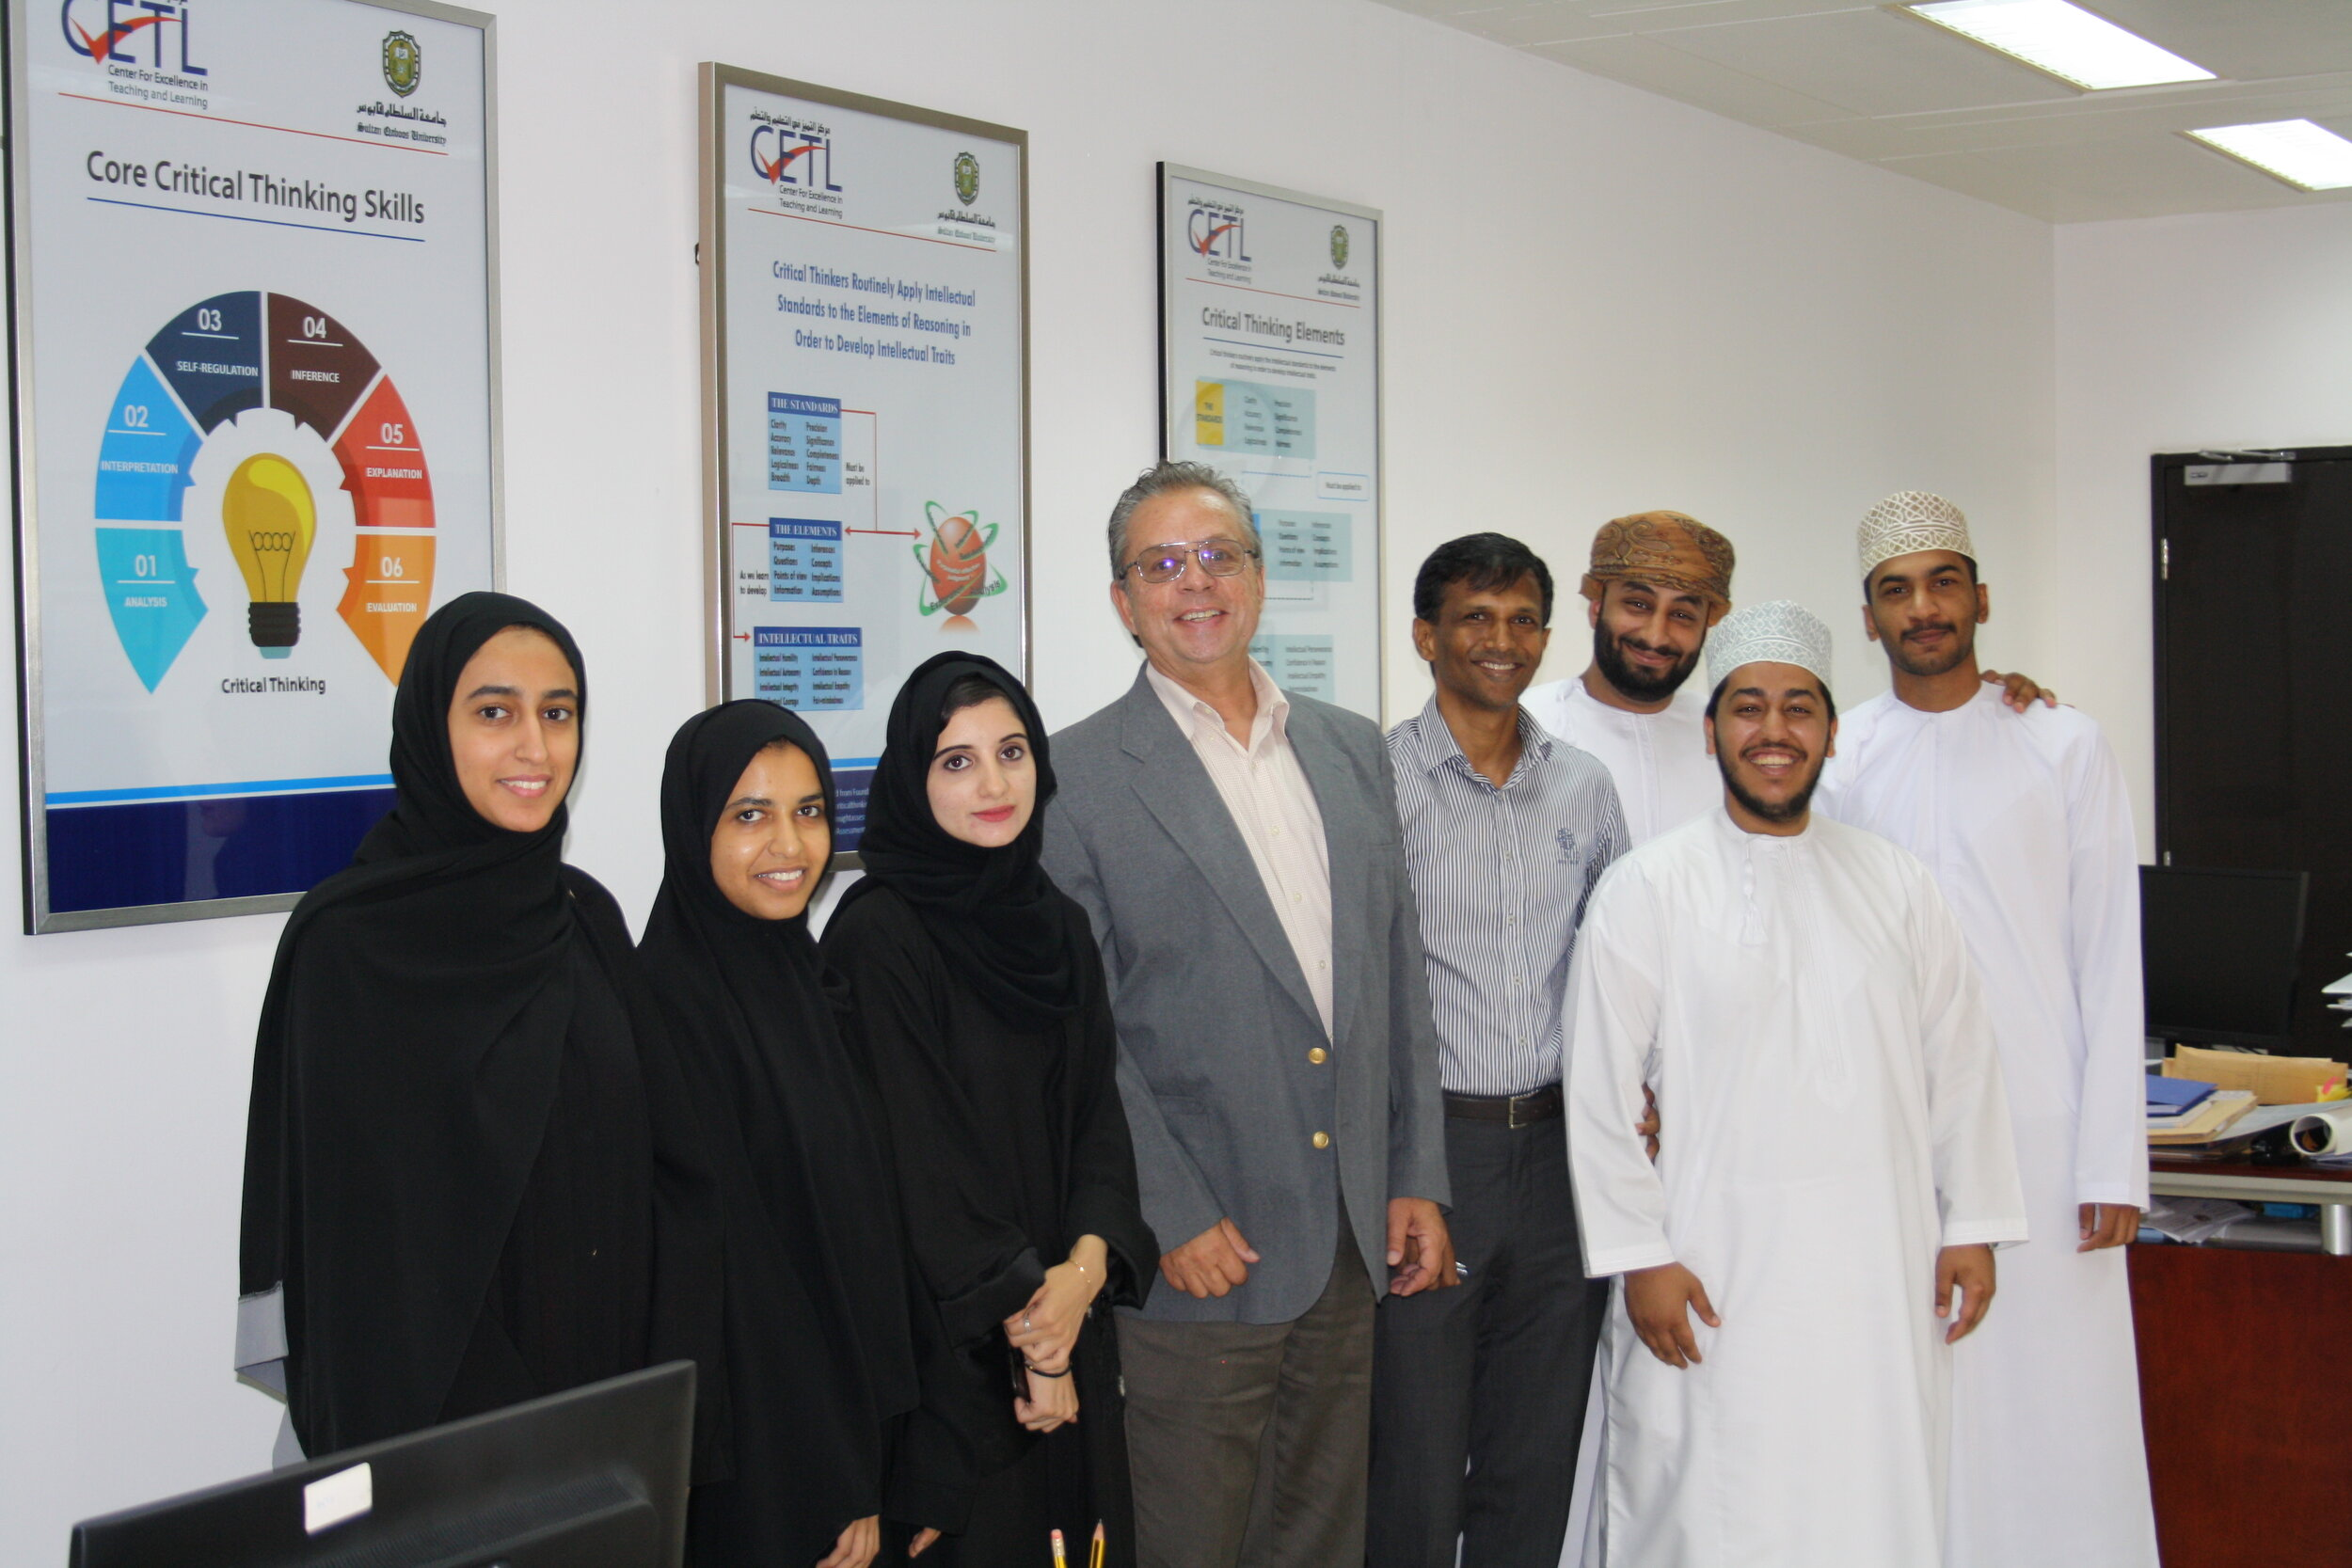 Helping Students Build Critical Thinking Skills in Oman Through the Fulbright Specialist Program